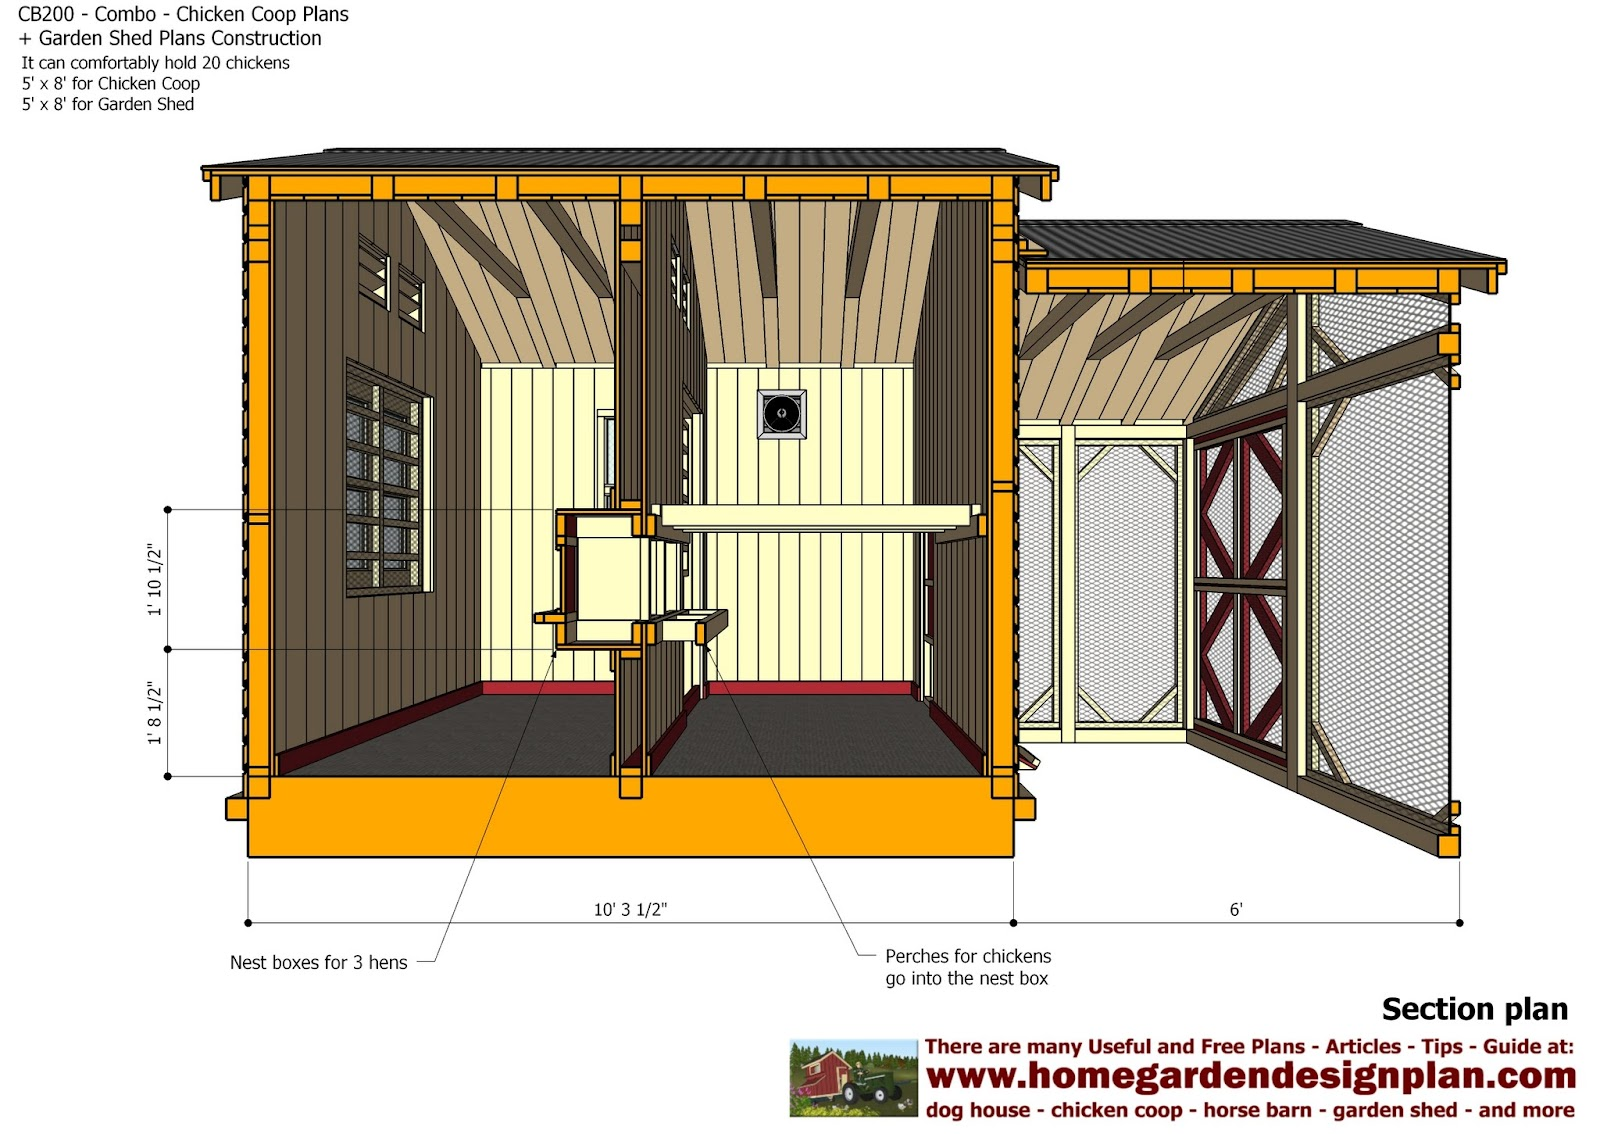 Home garden plans cb200 combo plans chicken coop for Shed design plans